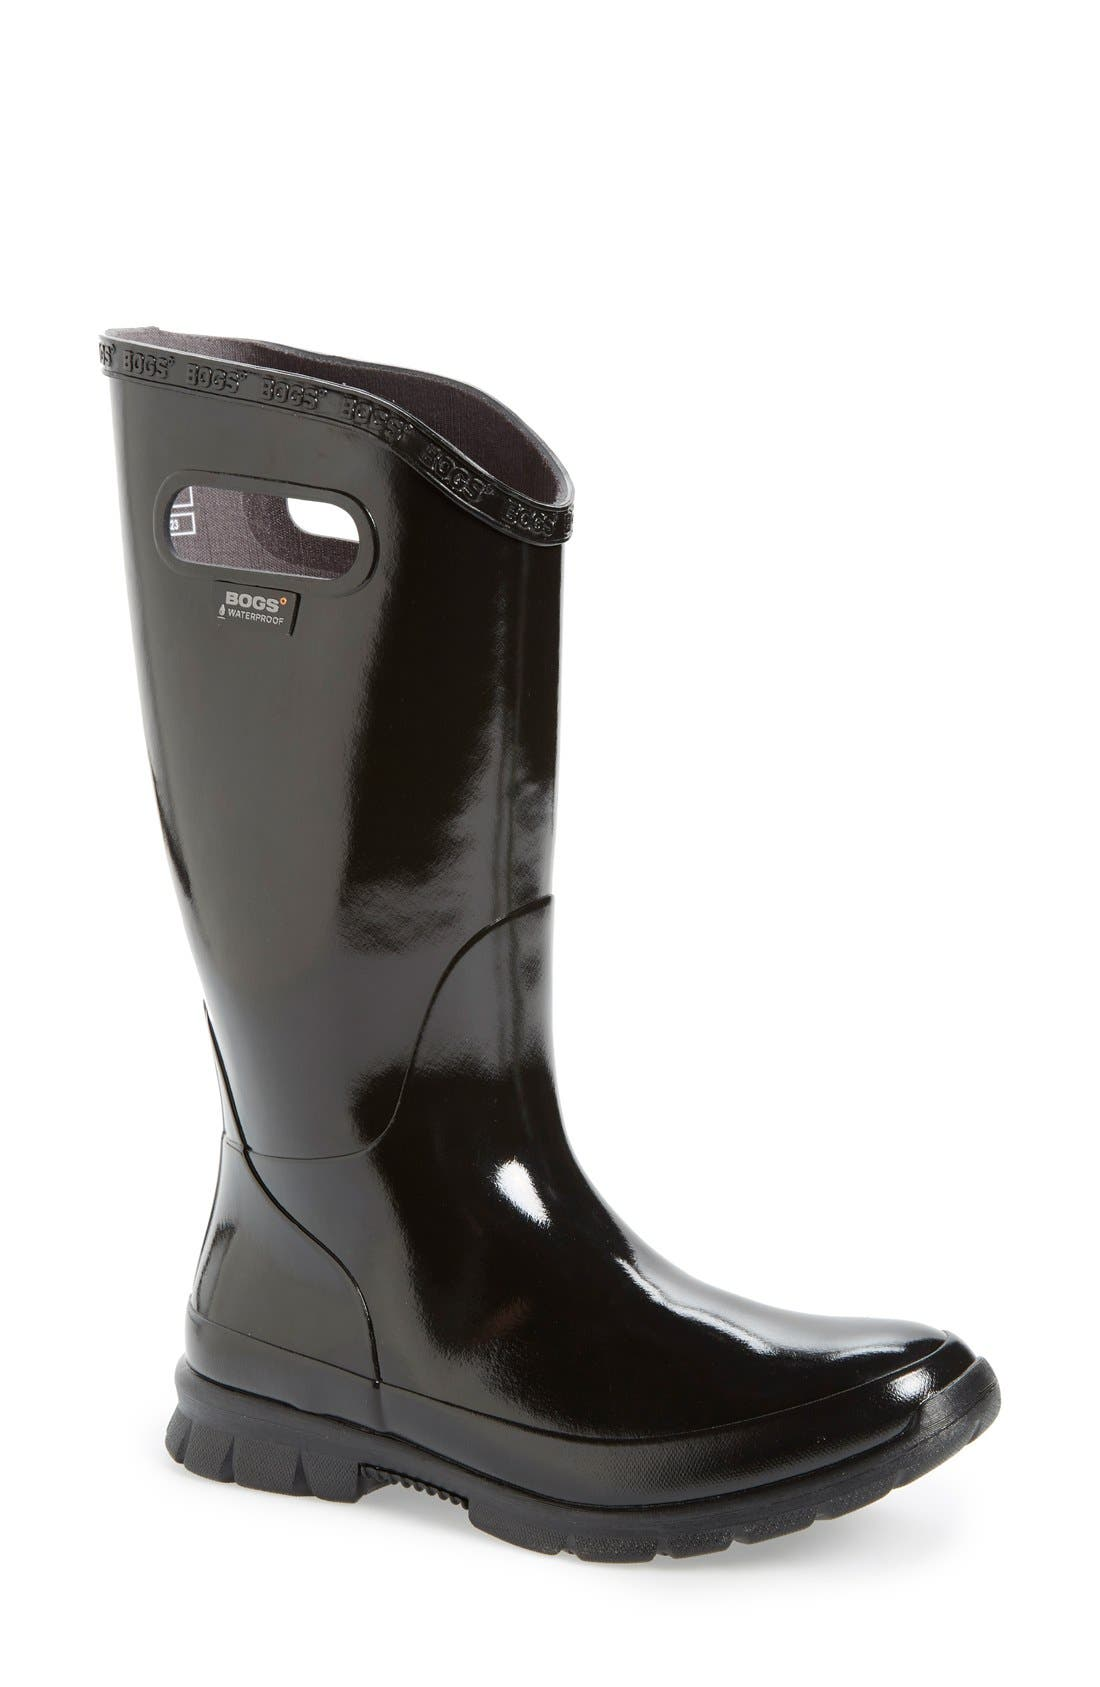 Main Image - Bogs 'Berkley' Waterproof Rain Boot (Women). Color: Black